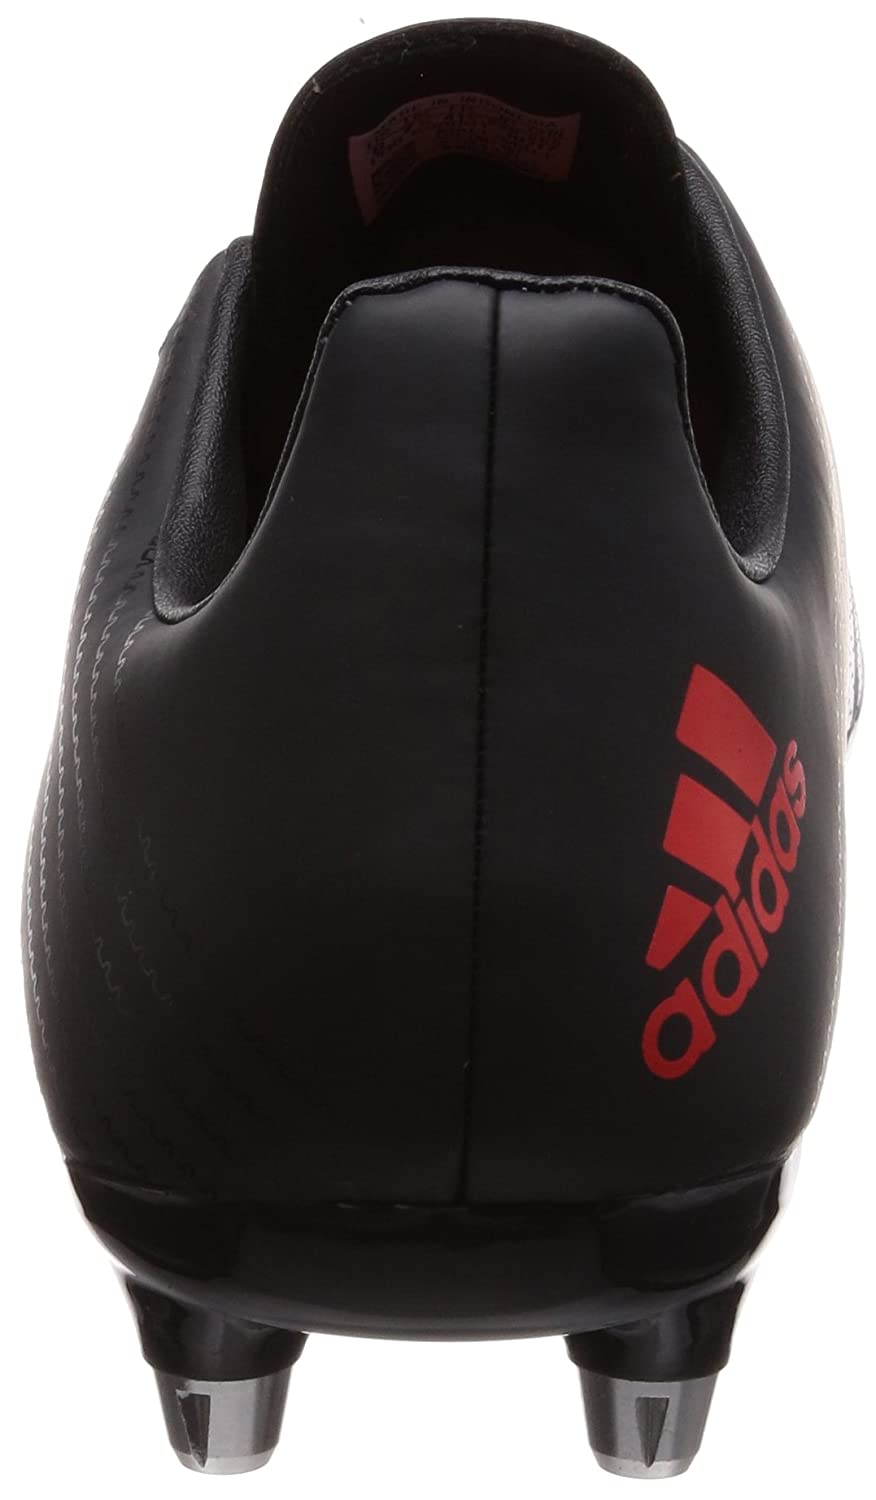 detailed look 36dc2 03d69 adidas Mens Malice Sg Rugby Shoes, Brown LbrownhirereTalc, 6 UK  Amazon.co.uk Shoes  Bags